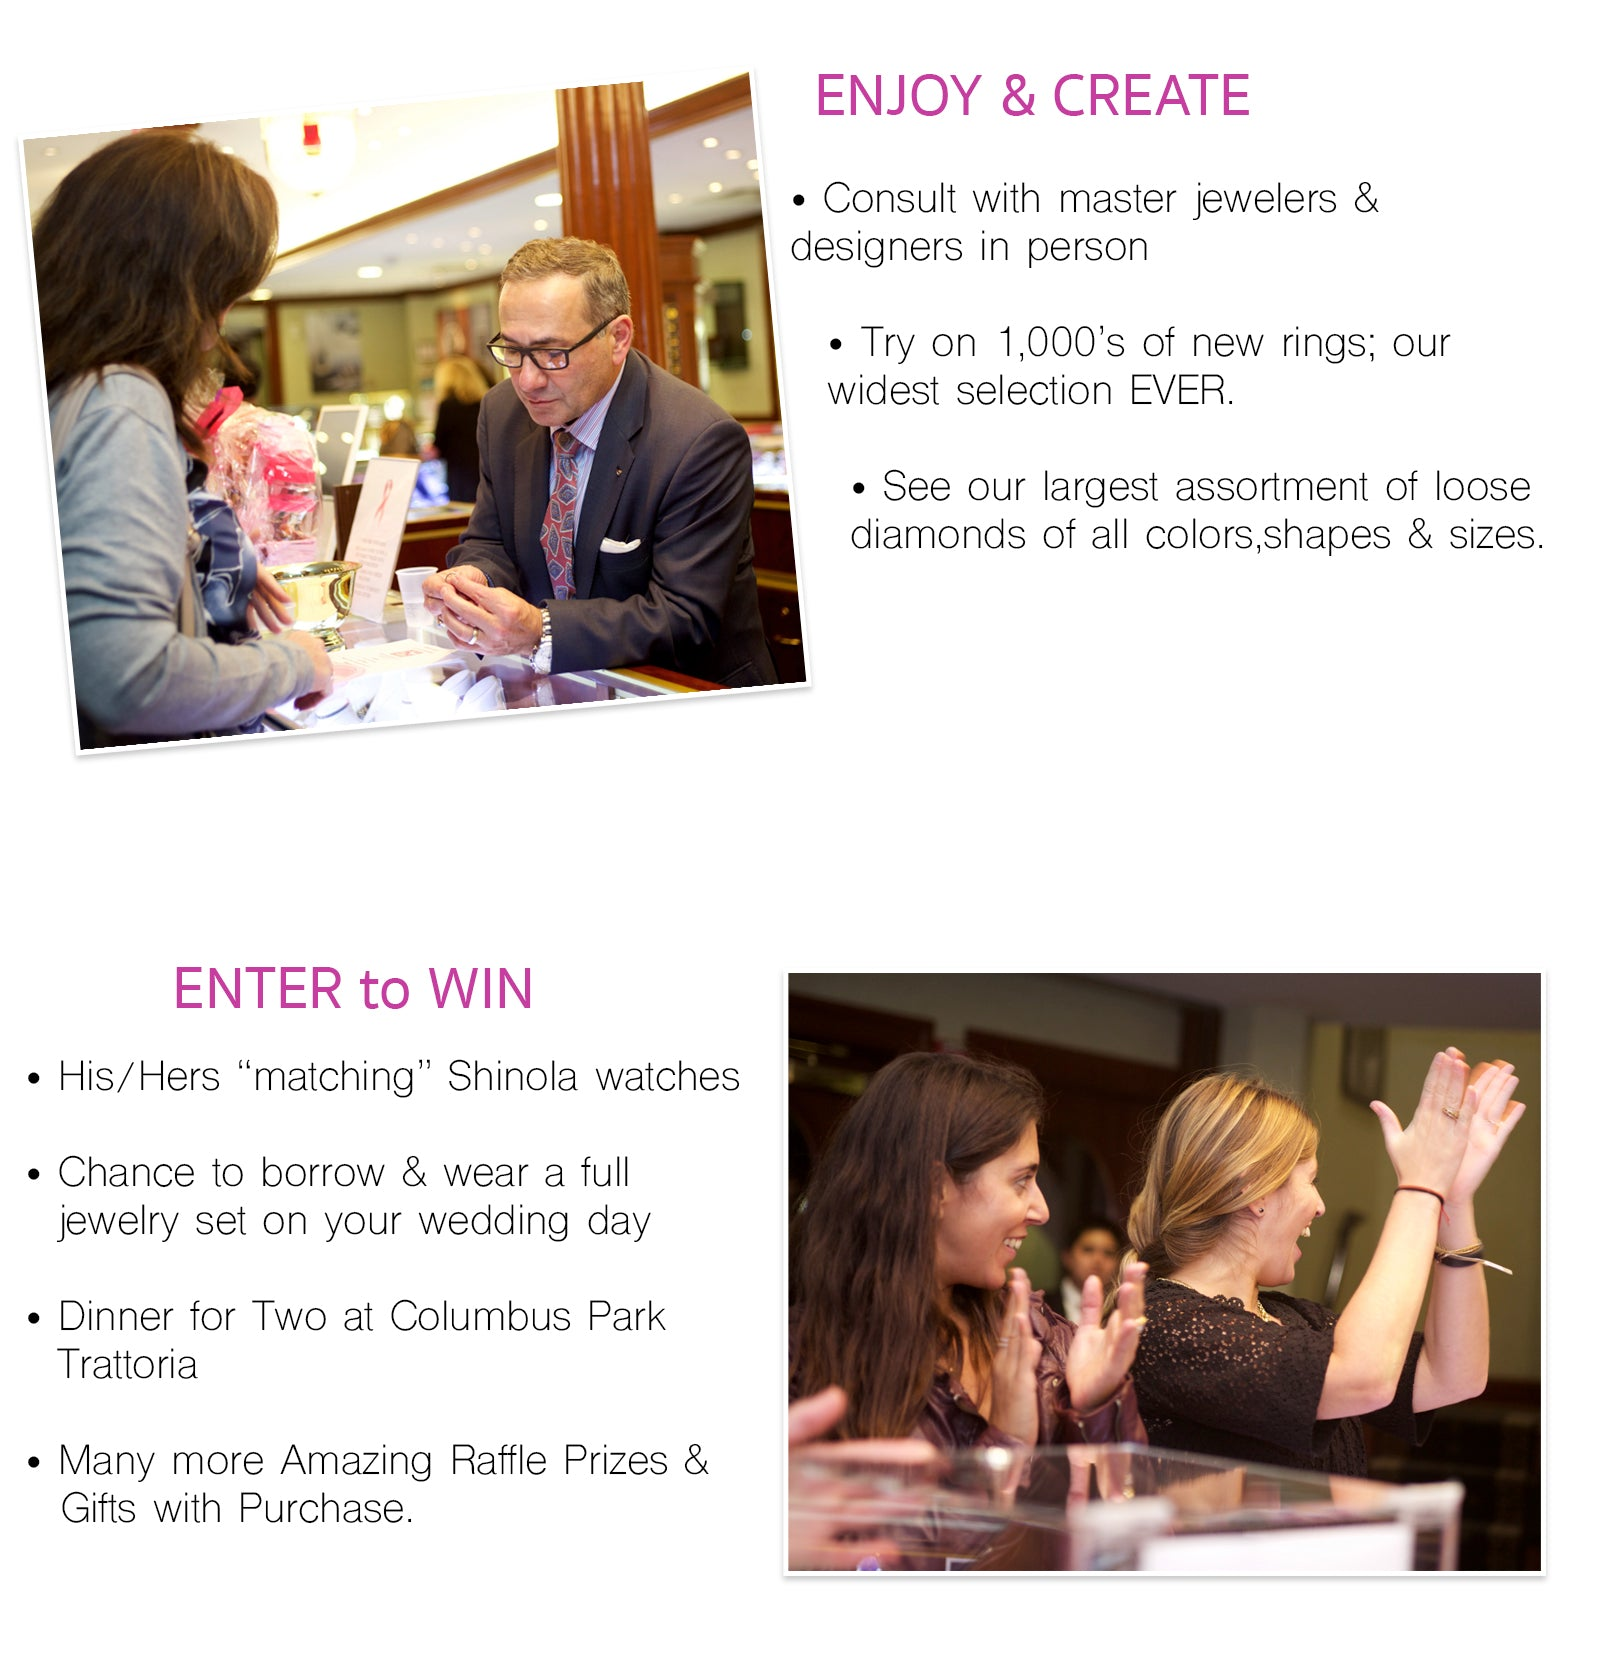 win amazing prizes, widest selection of wedding bands engagement rings